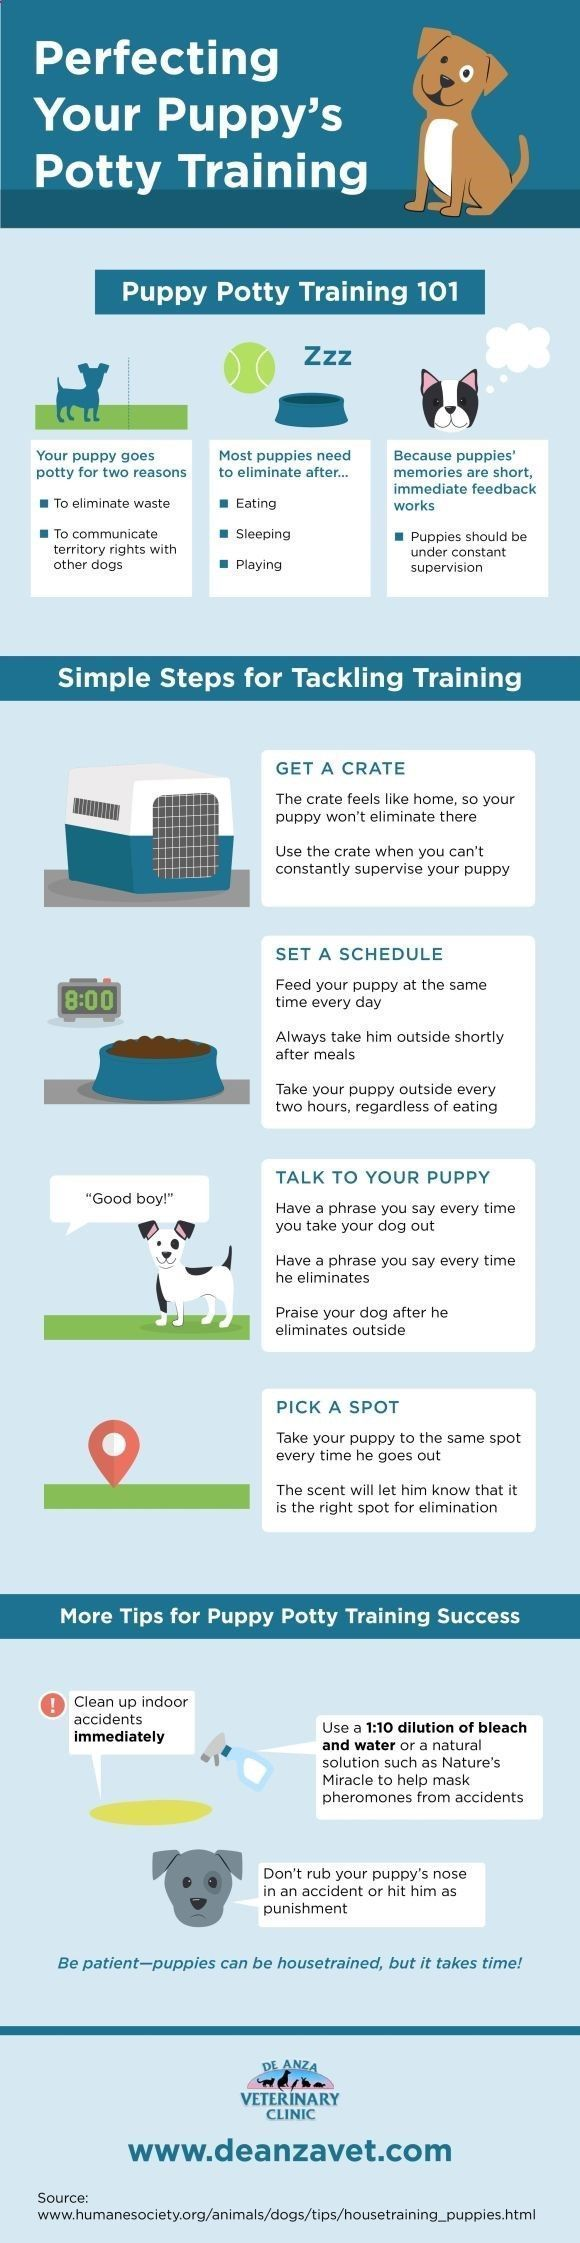 21 best Dog stuff images on Pinterest | Cattle dogs, Cute pets and ...